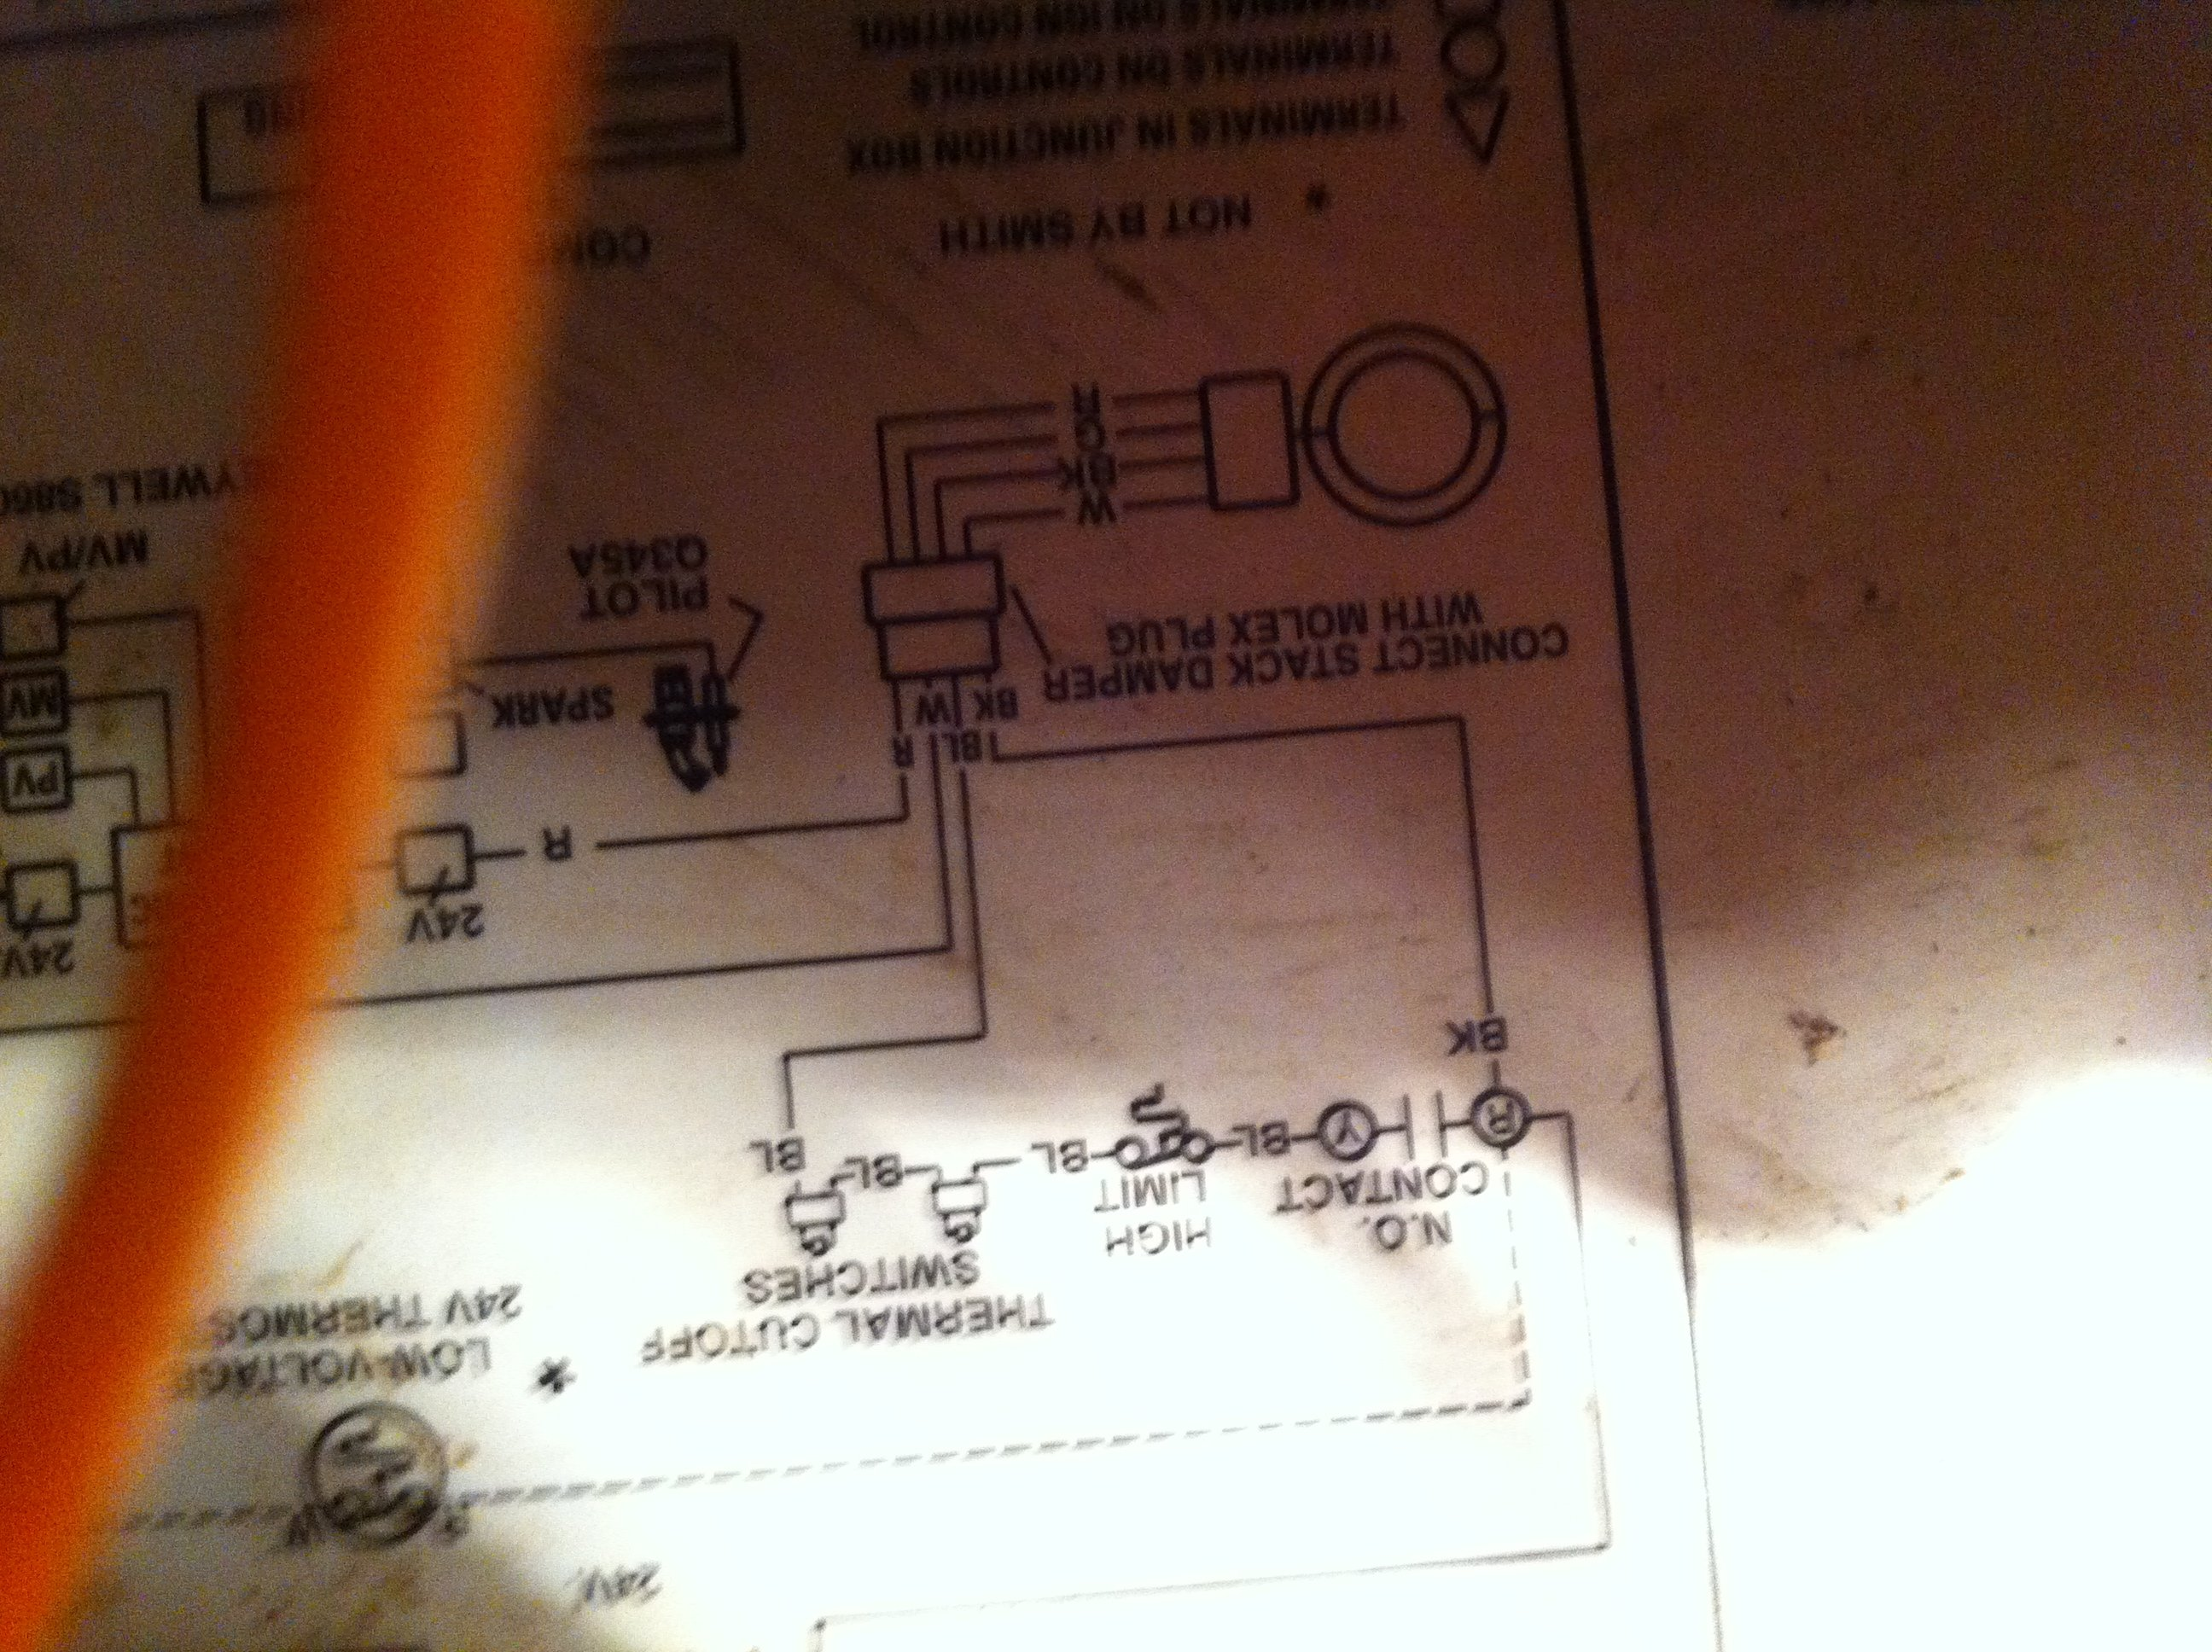 I Need Help Jumping Out The Damper On Hb 100 Boiler No Sure Why Im Pennco Wiring Diagram Customer Reply